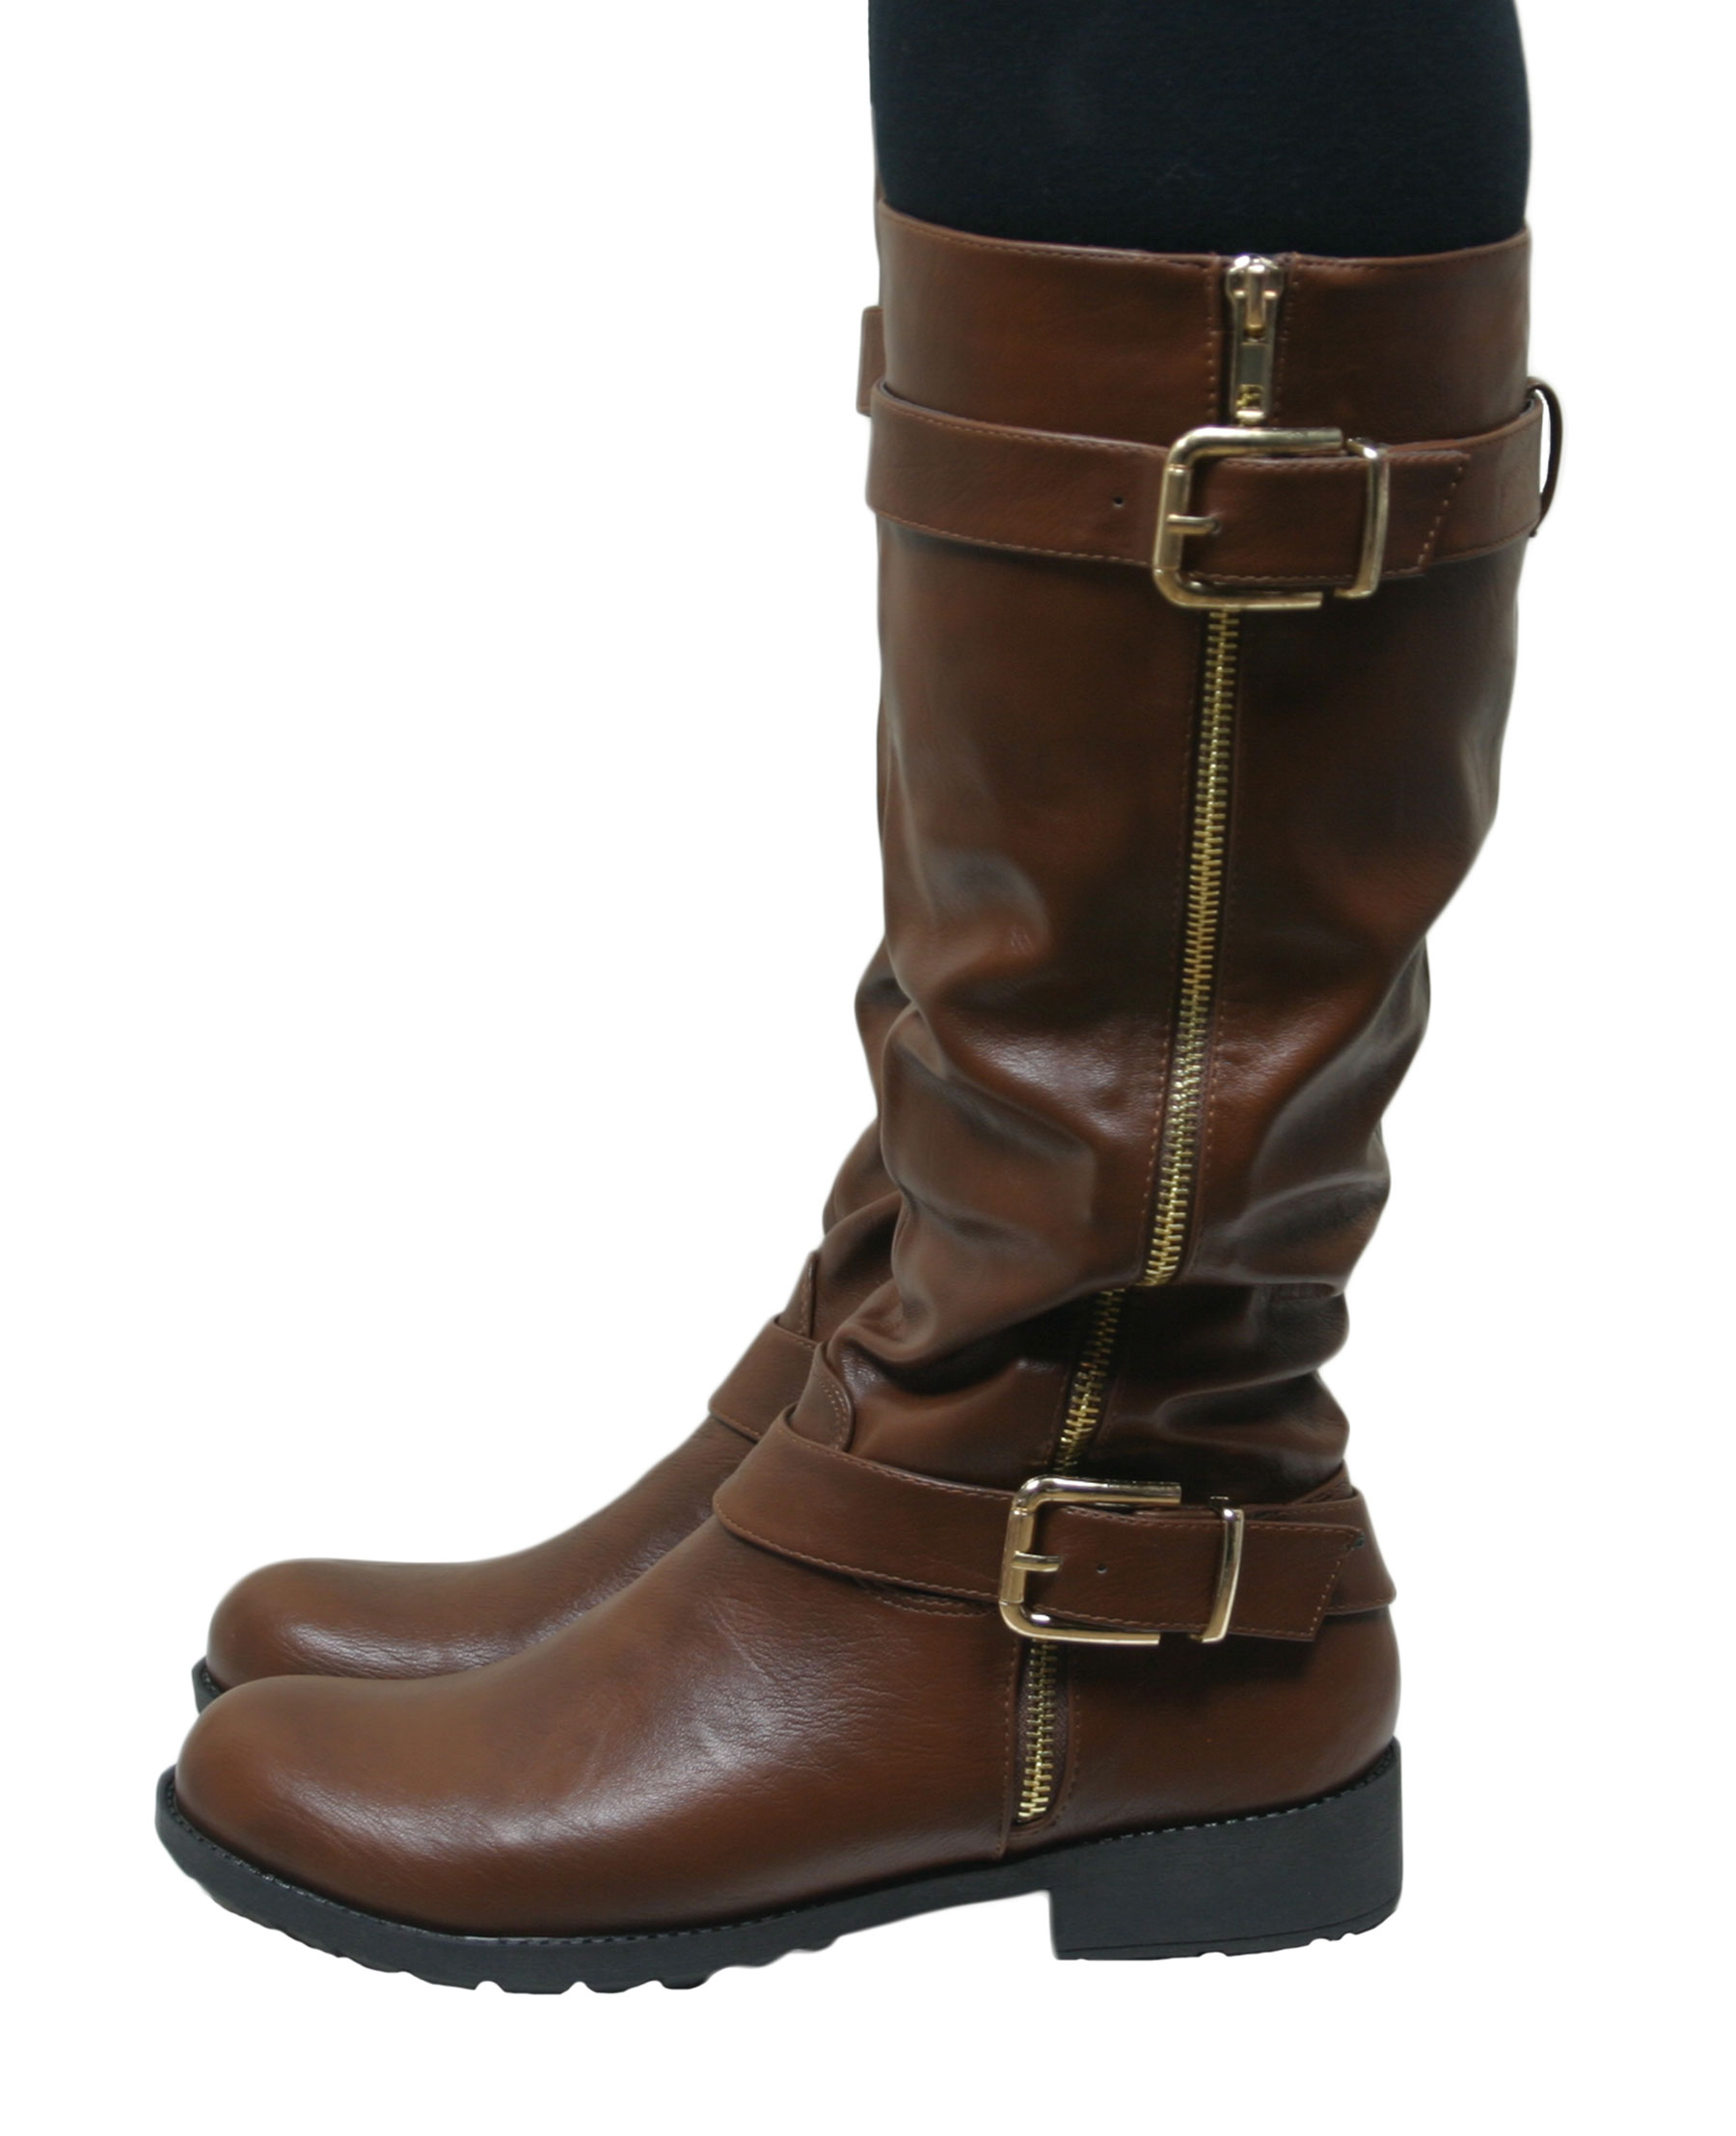 Lastest The Best Riding Boots For Women In 2018 - Complete Guide